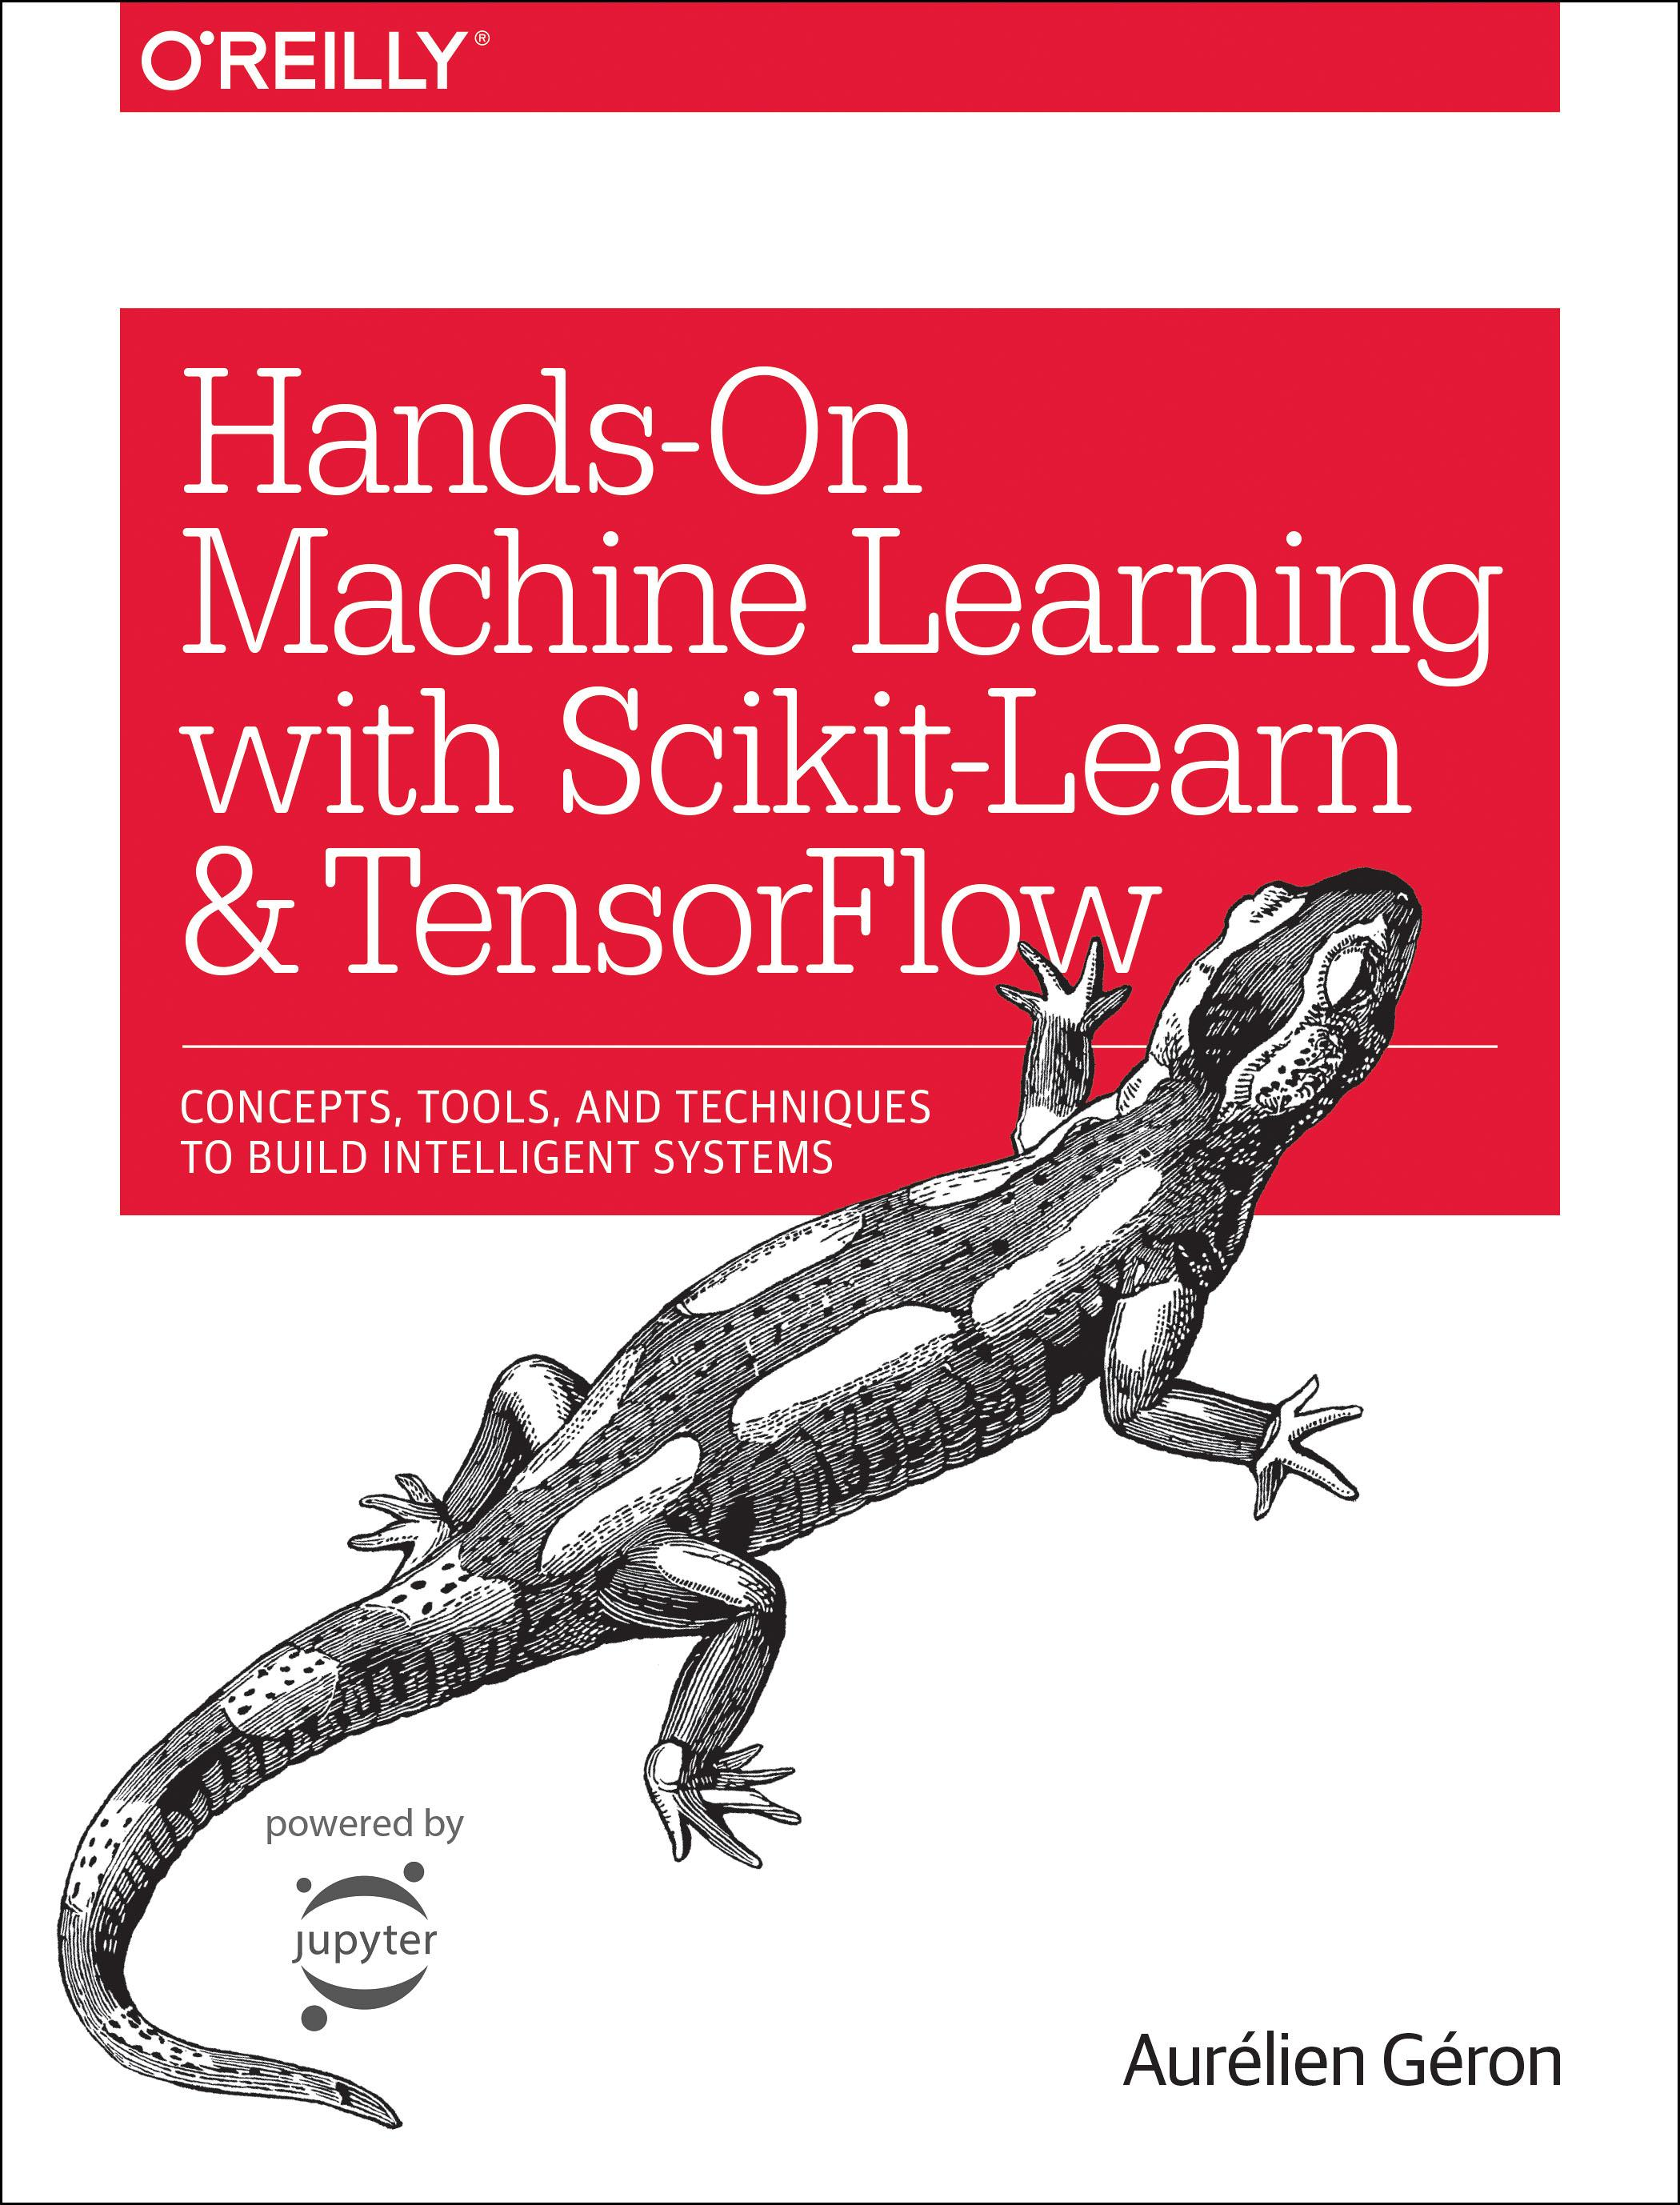 Hands-On Machine Learning with Scikit-Learn and TensorFlow: Concepts